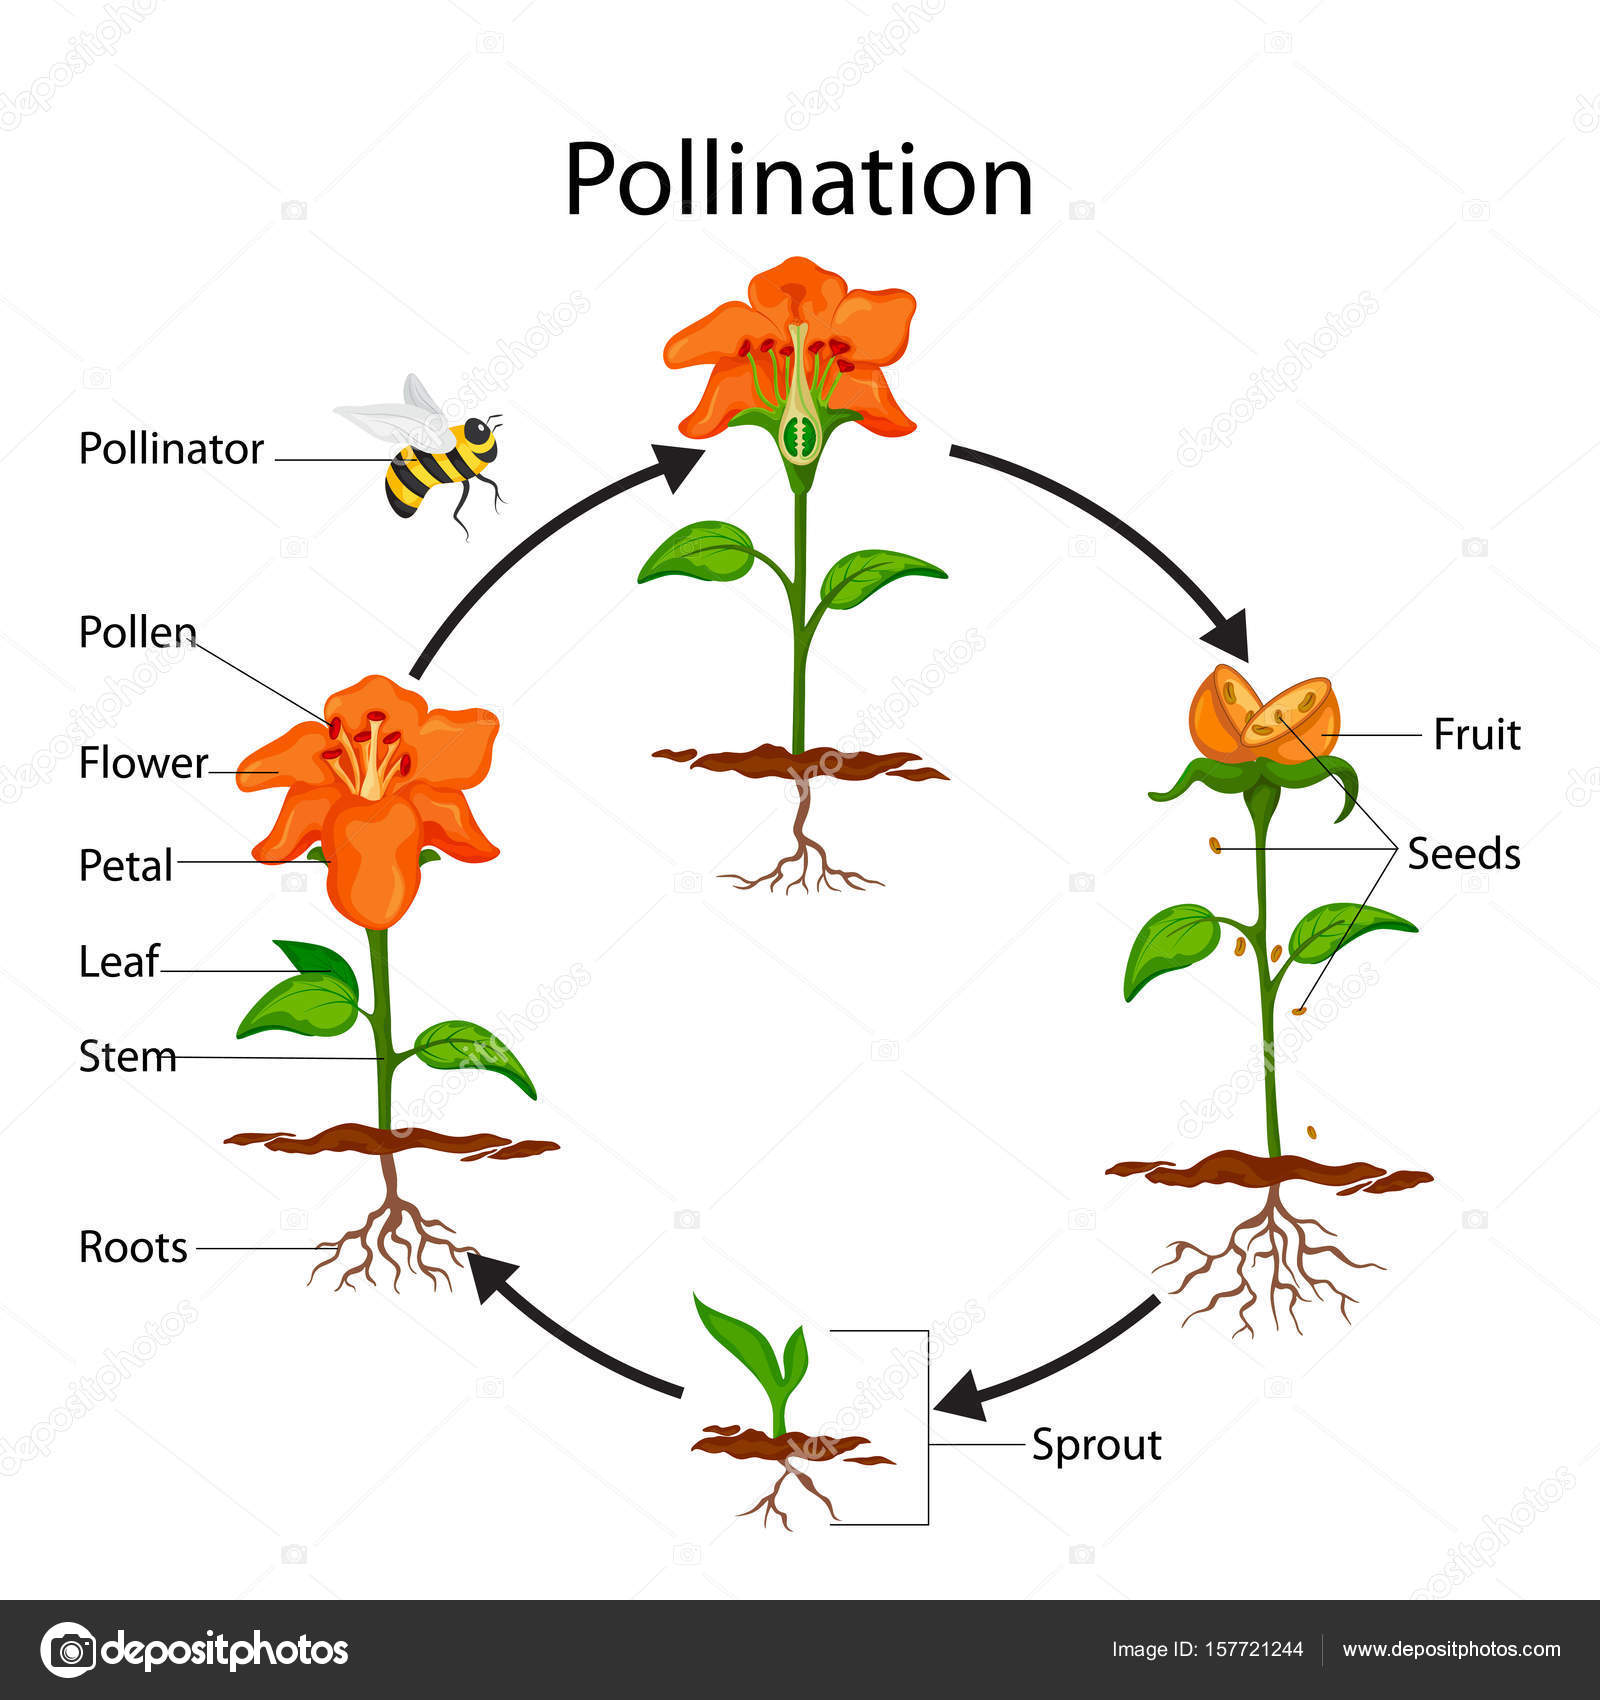 Education chart of biology for pollination process diagram stock education chart of biology for pollination process diagram stock vector ccuart Image collections